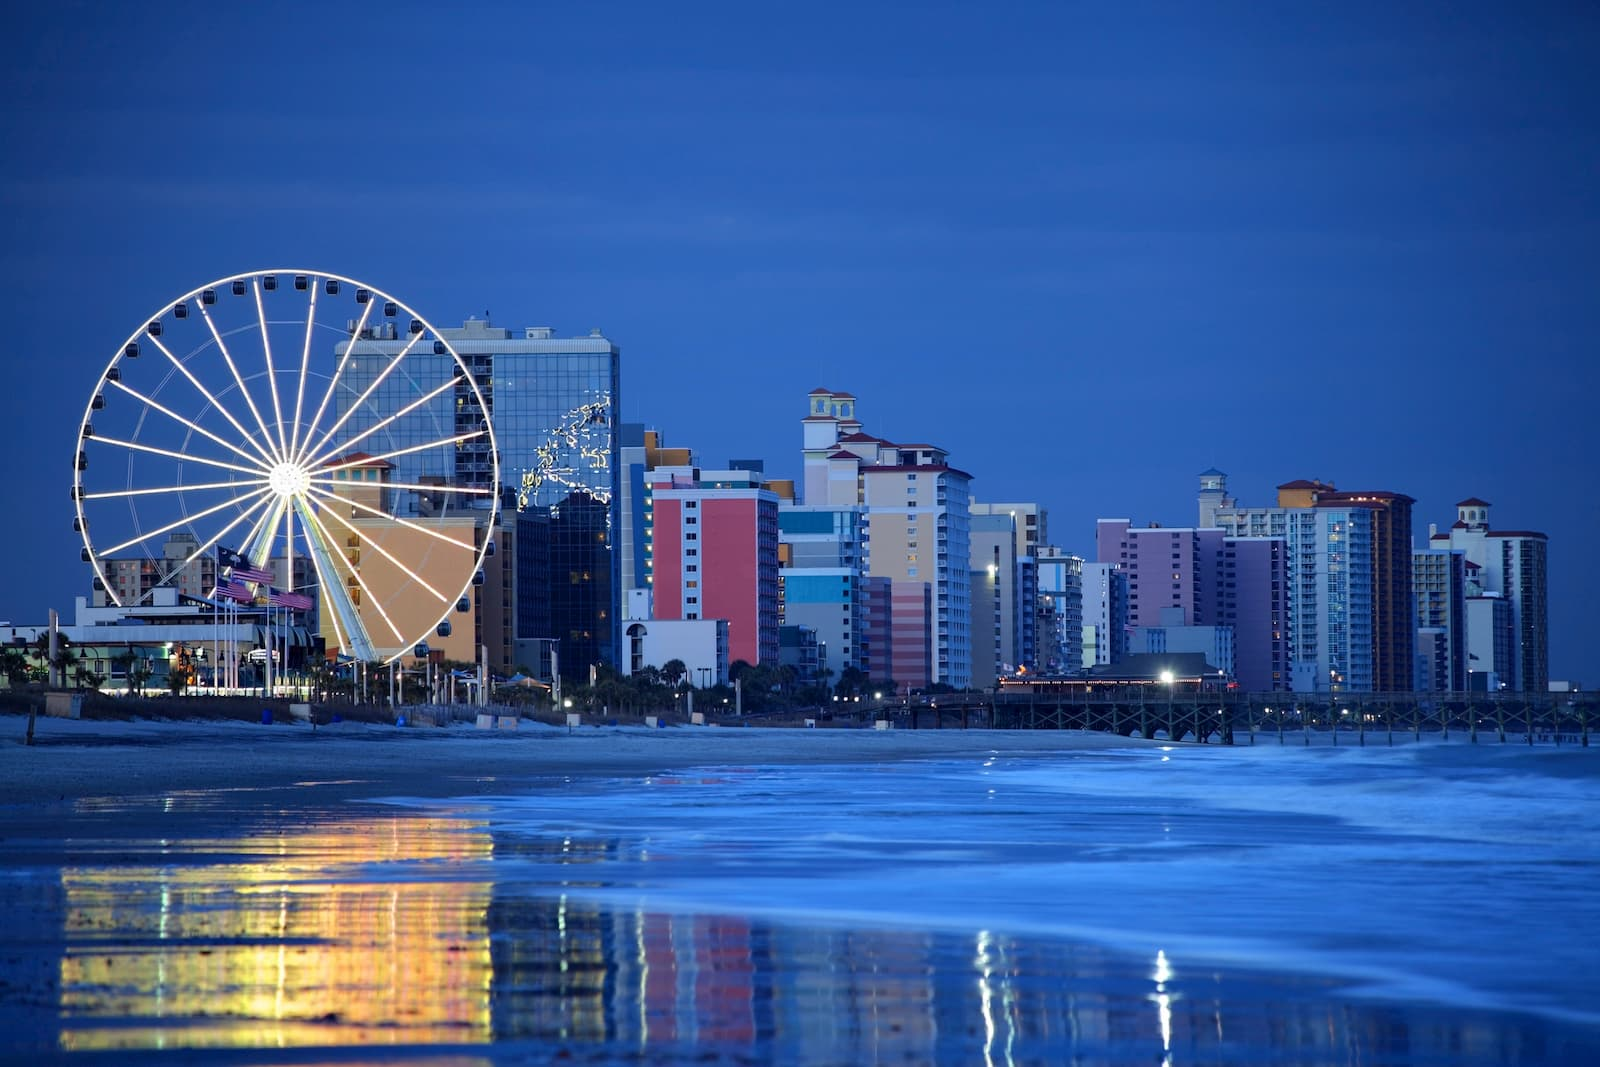 skywheel ferris wheel in myrtle beach south carolina at dusk